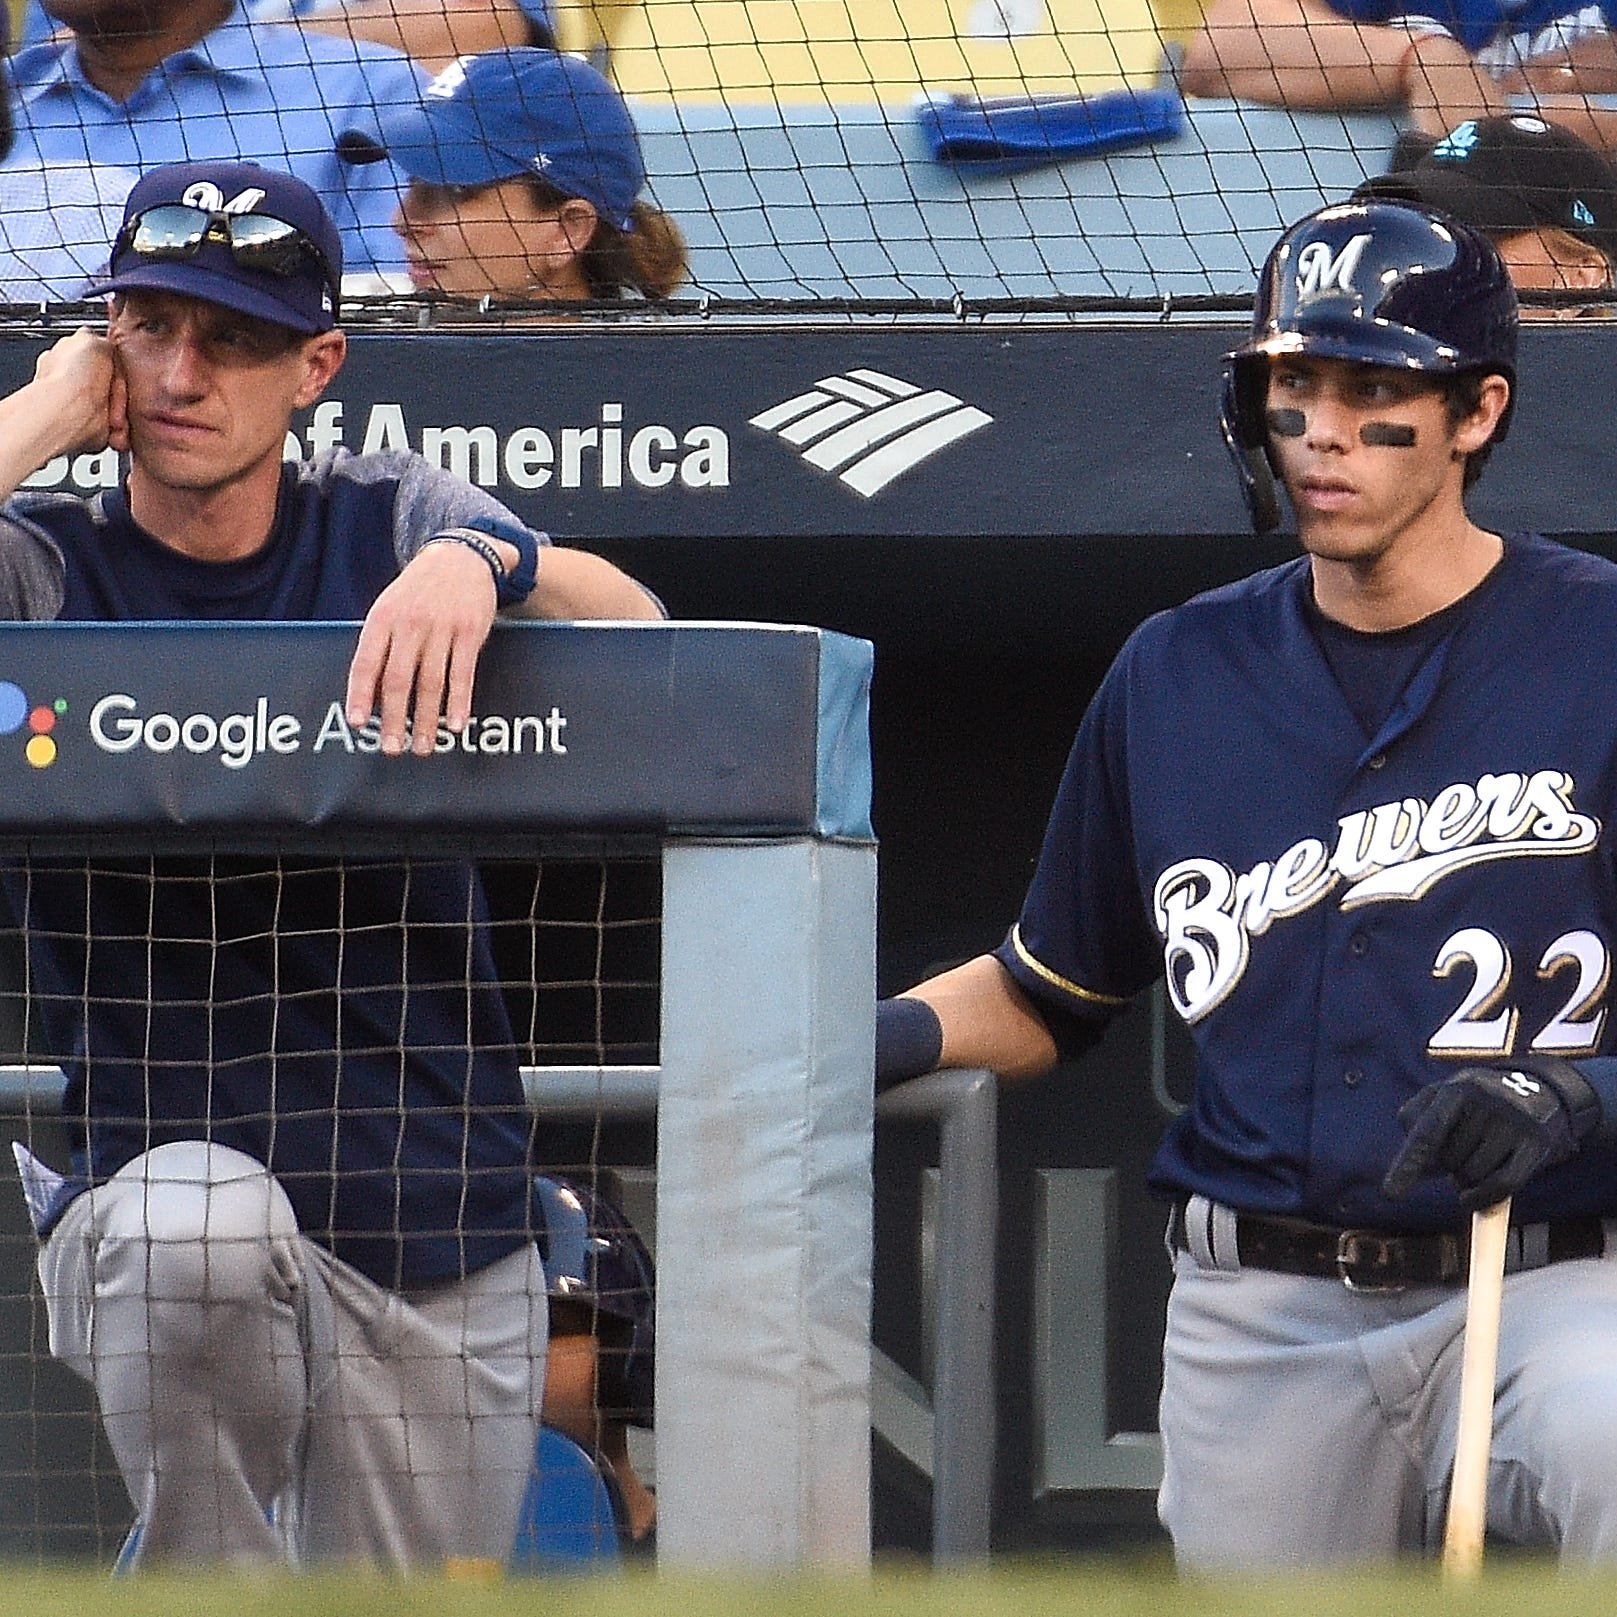 Christian Yelich makes no excuses for struggles at the plate as Brewers fall behind in NLCS